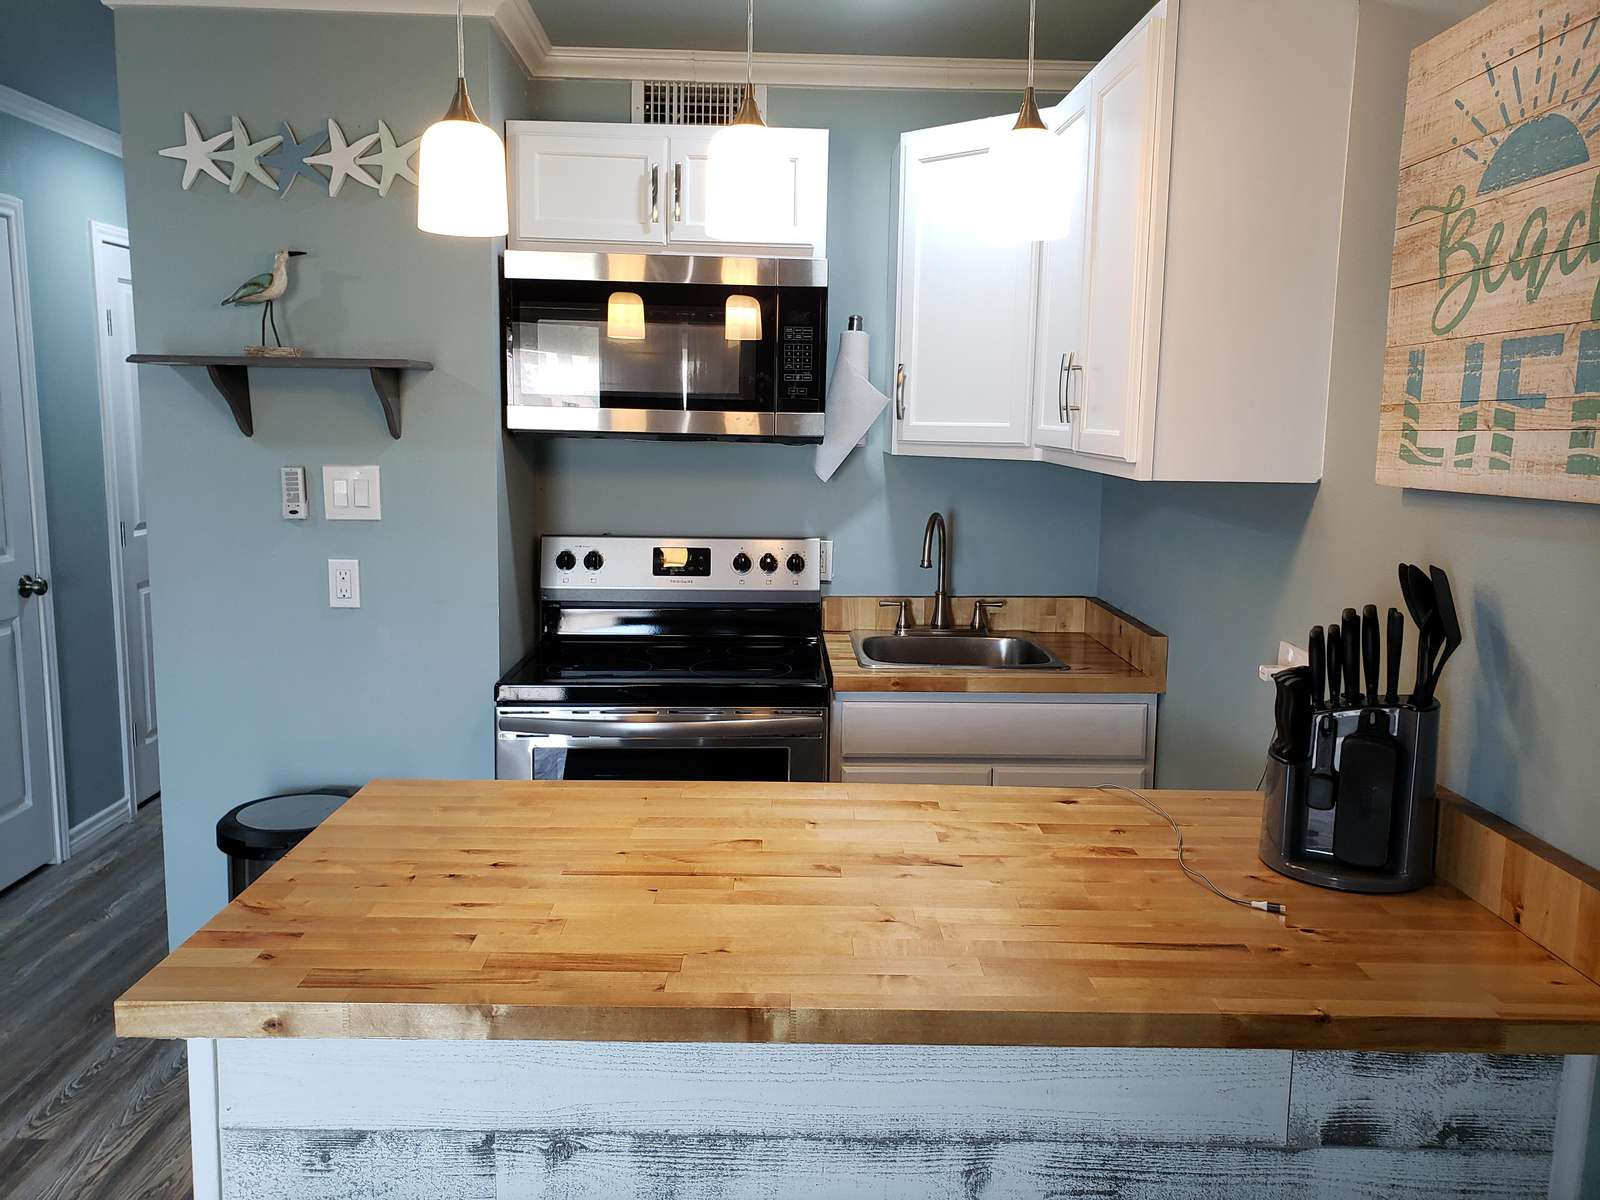 tastefully decorated complete with a little kitchen with full sized appliances allowing you to create a home cooked meal while traveling